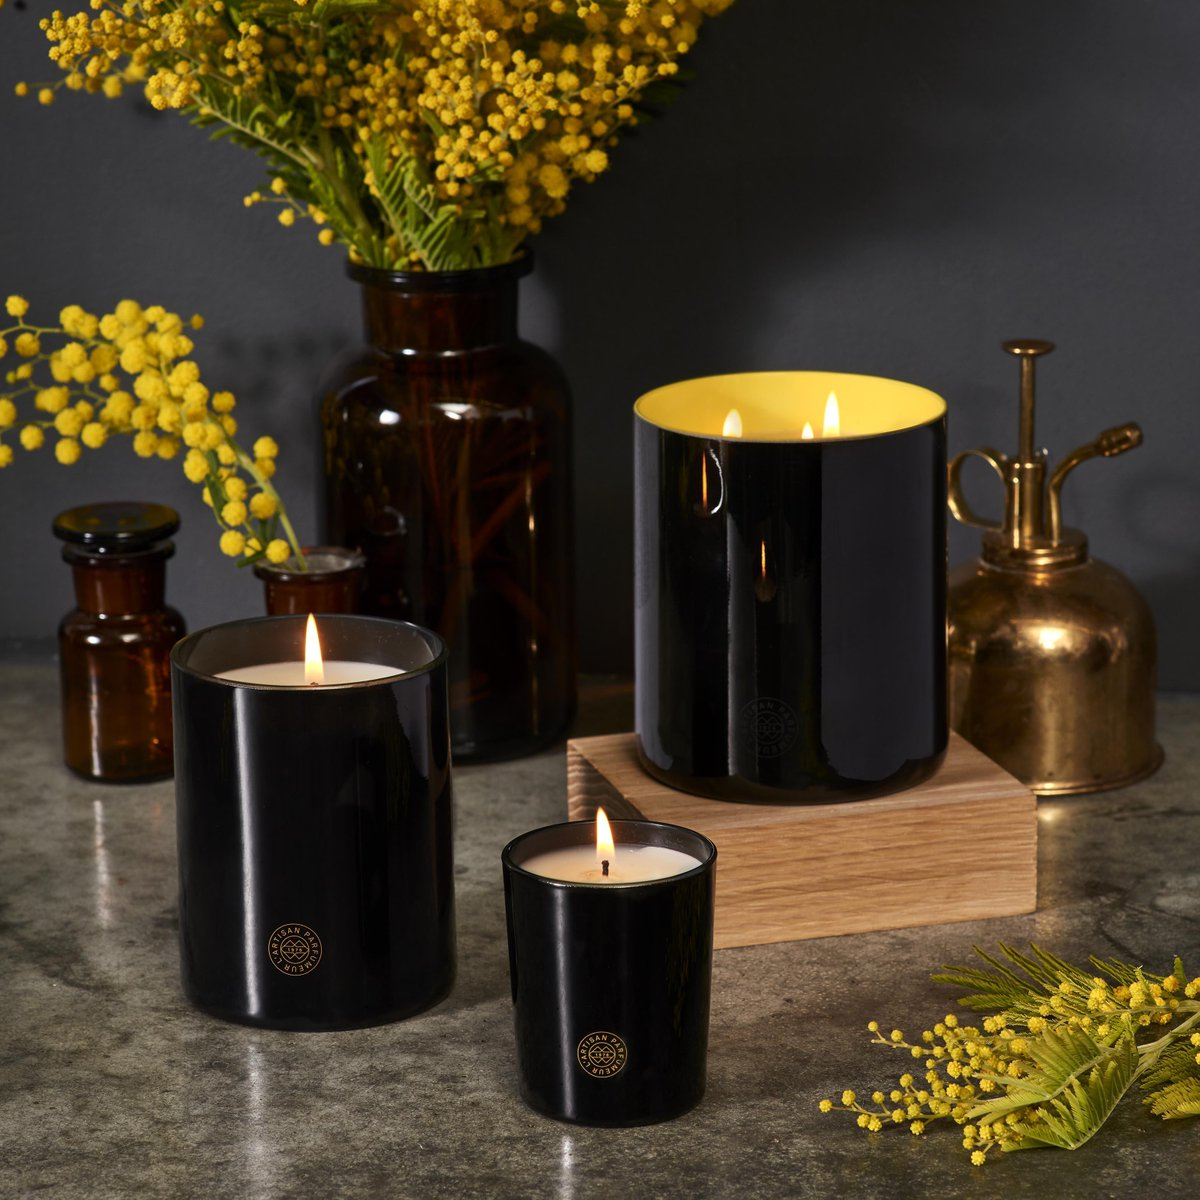 Warm up your home with one of L'Artisan Parfumeur's luxurious scented candles. Do you have a favourite candle? https://t.co/VVZe7GxHeY https://t.co/ziSEfV0tFJ